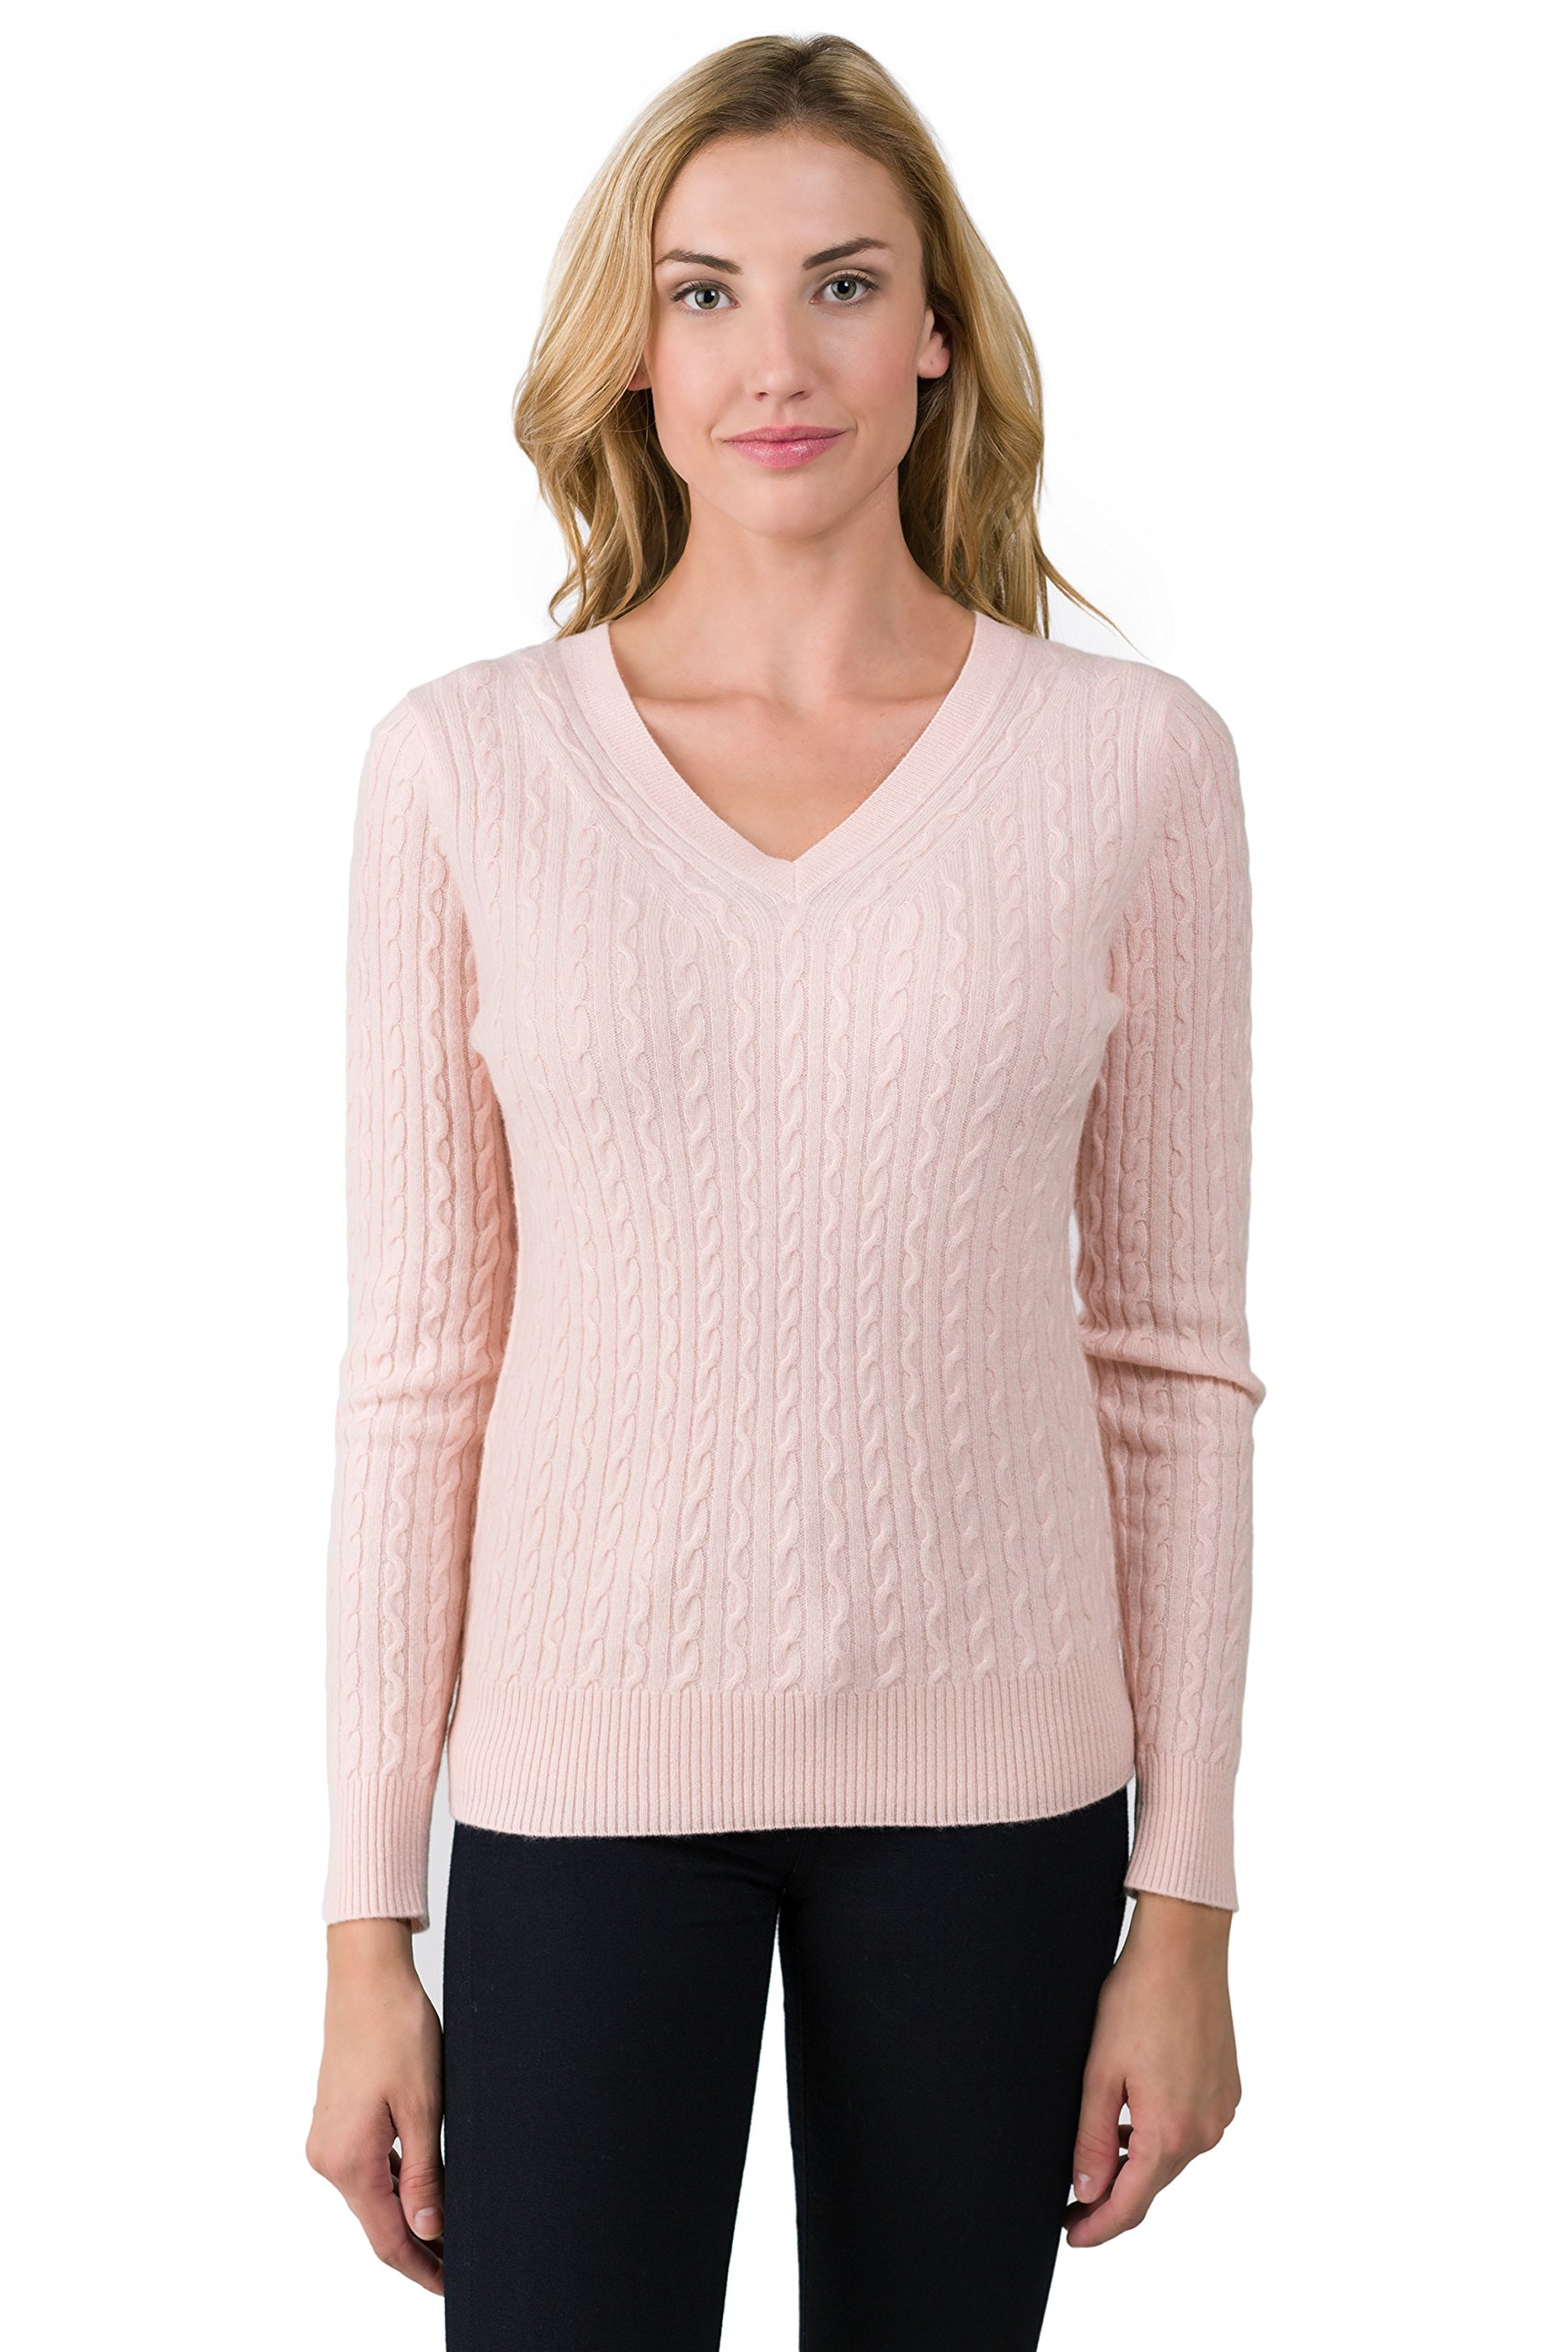 J CASHMERE Women's 100% Cashmere Long Sleeve Pullover Cable-knit V-neck Sweater Pink Pearl Medium